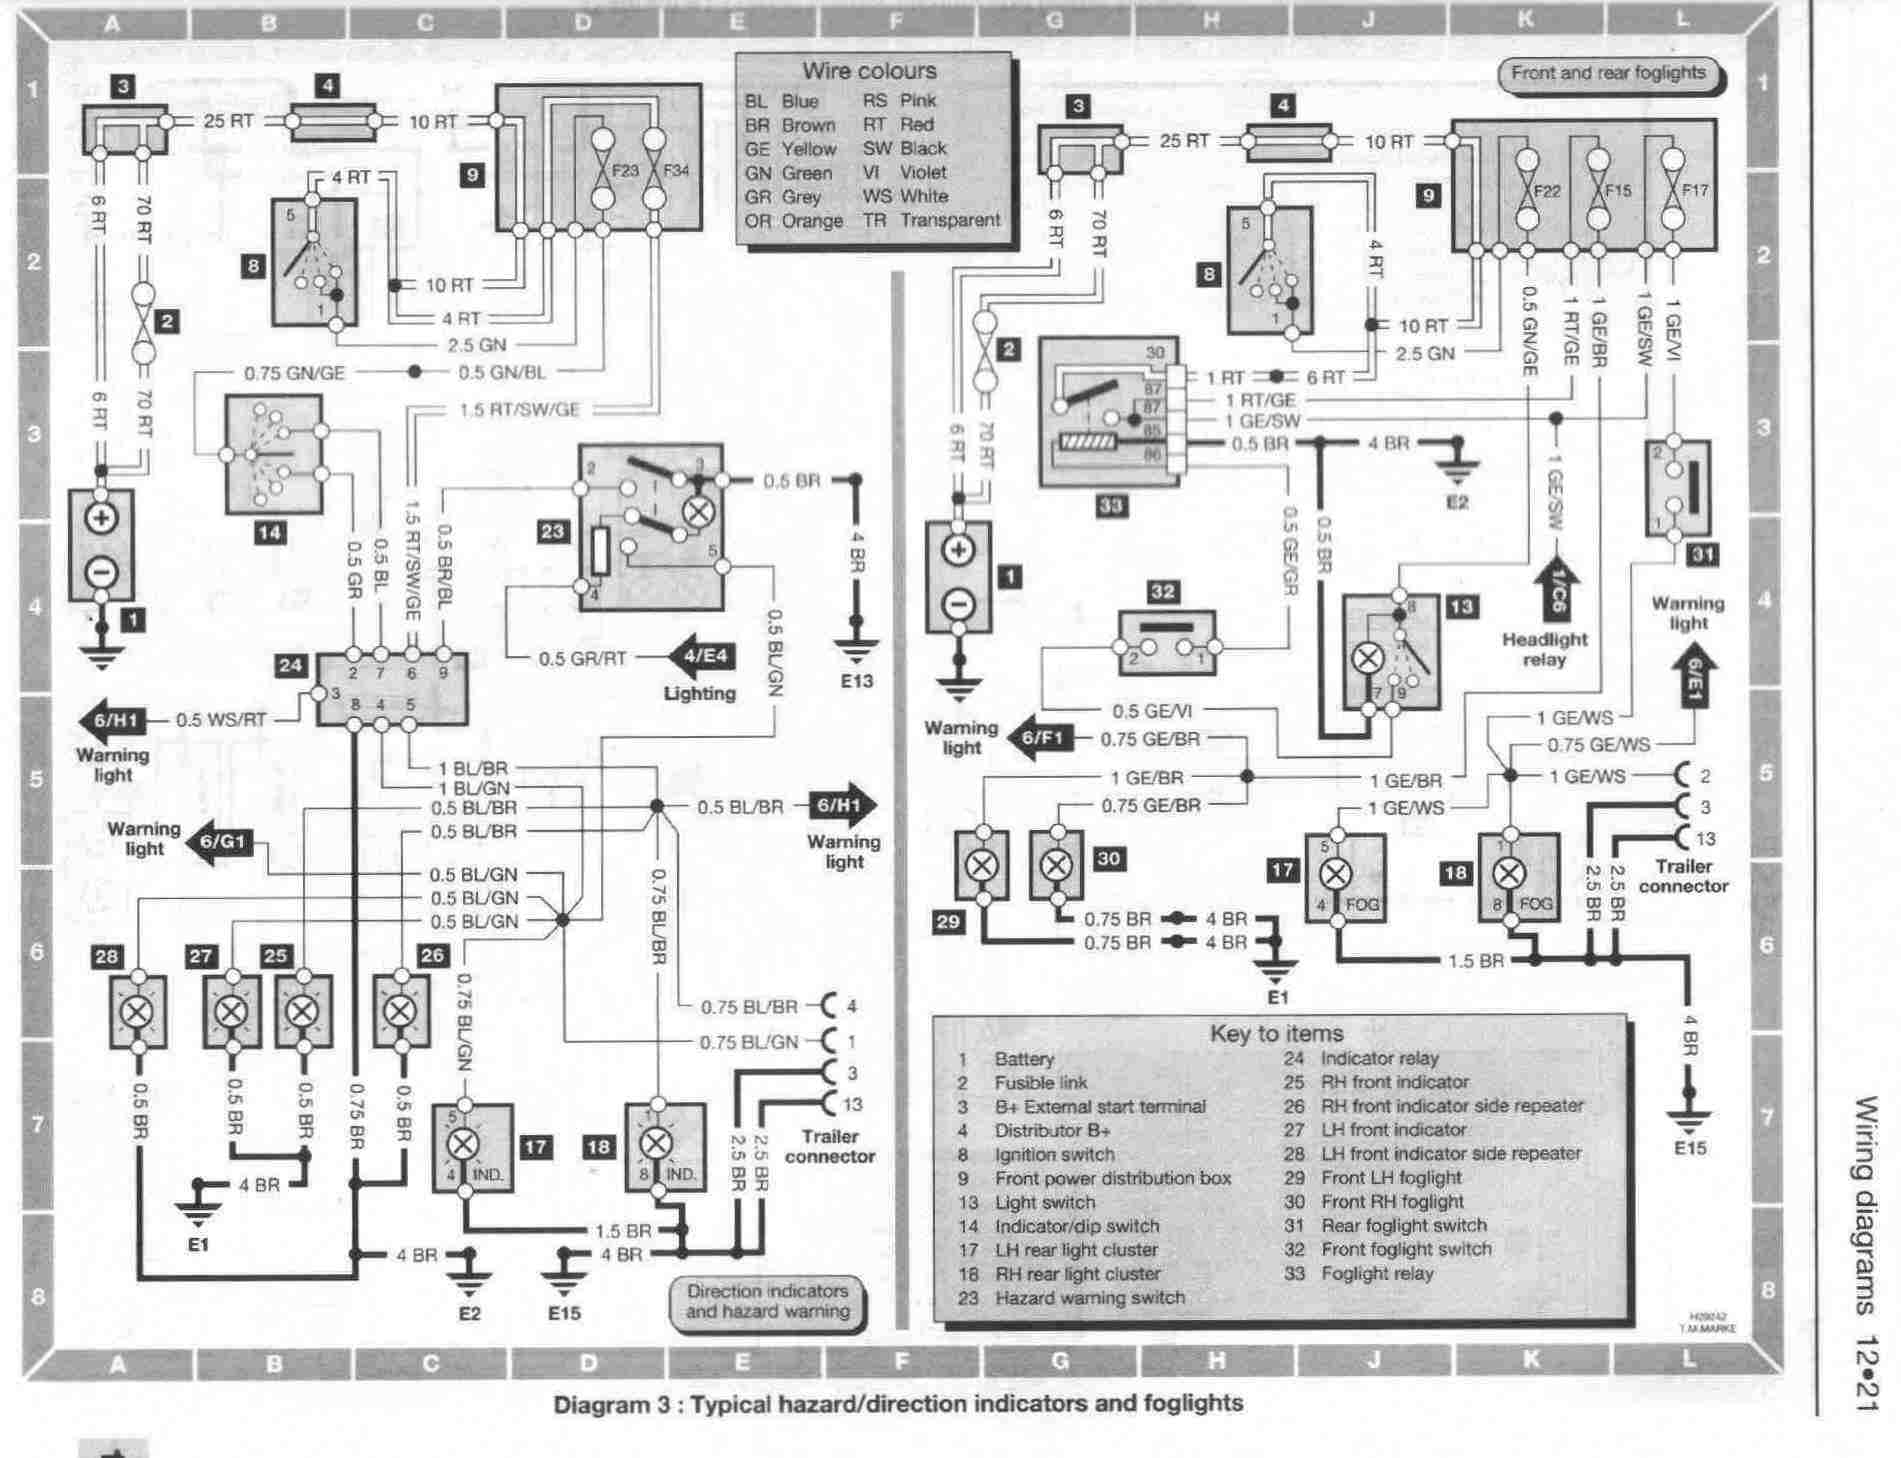 ... international wiring schematics Wiring diagram